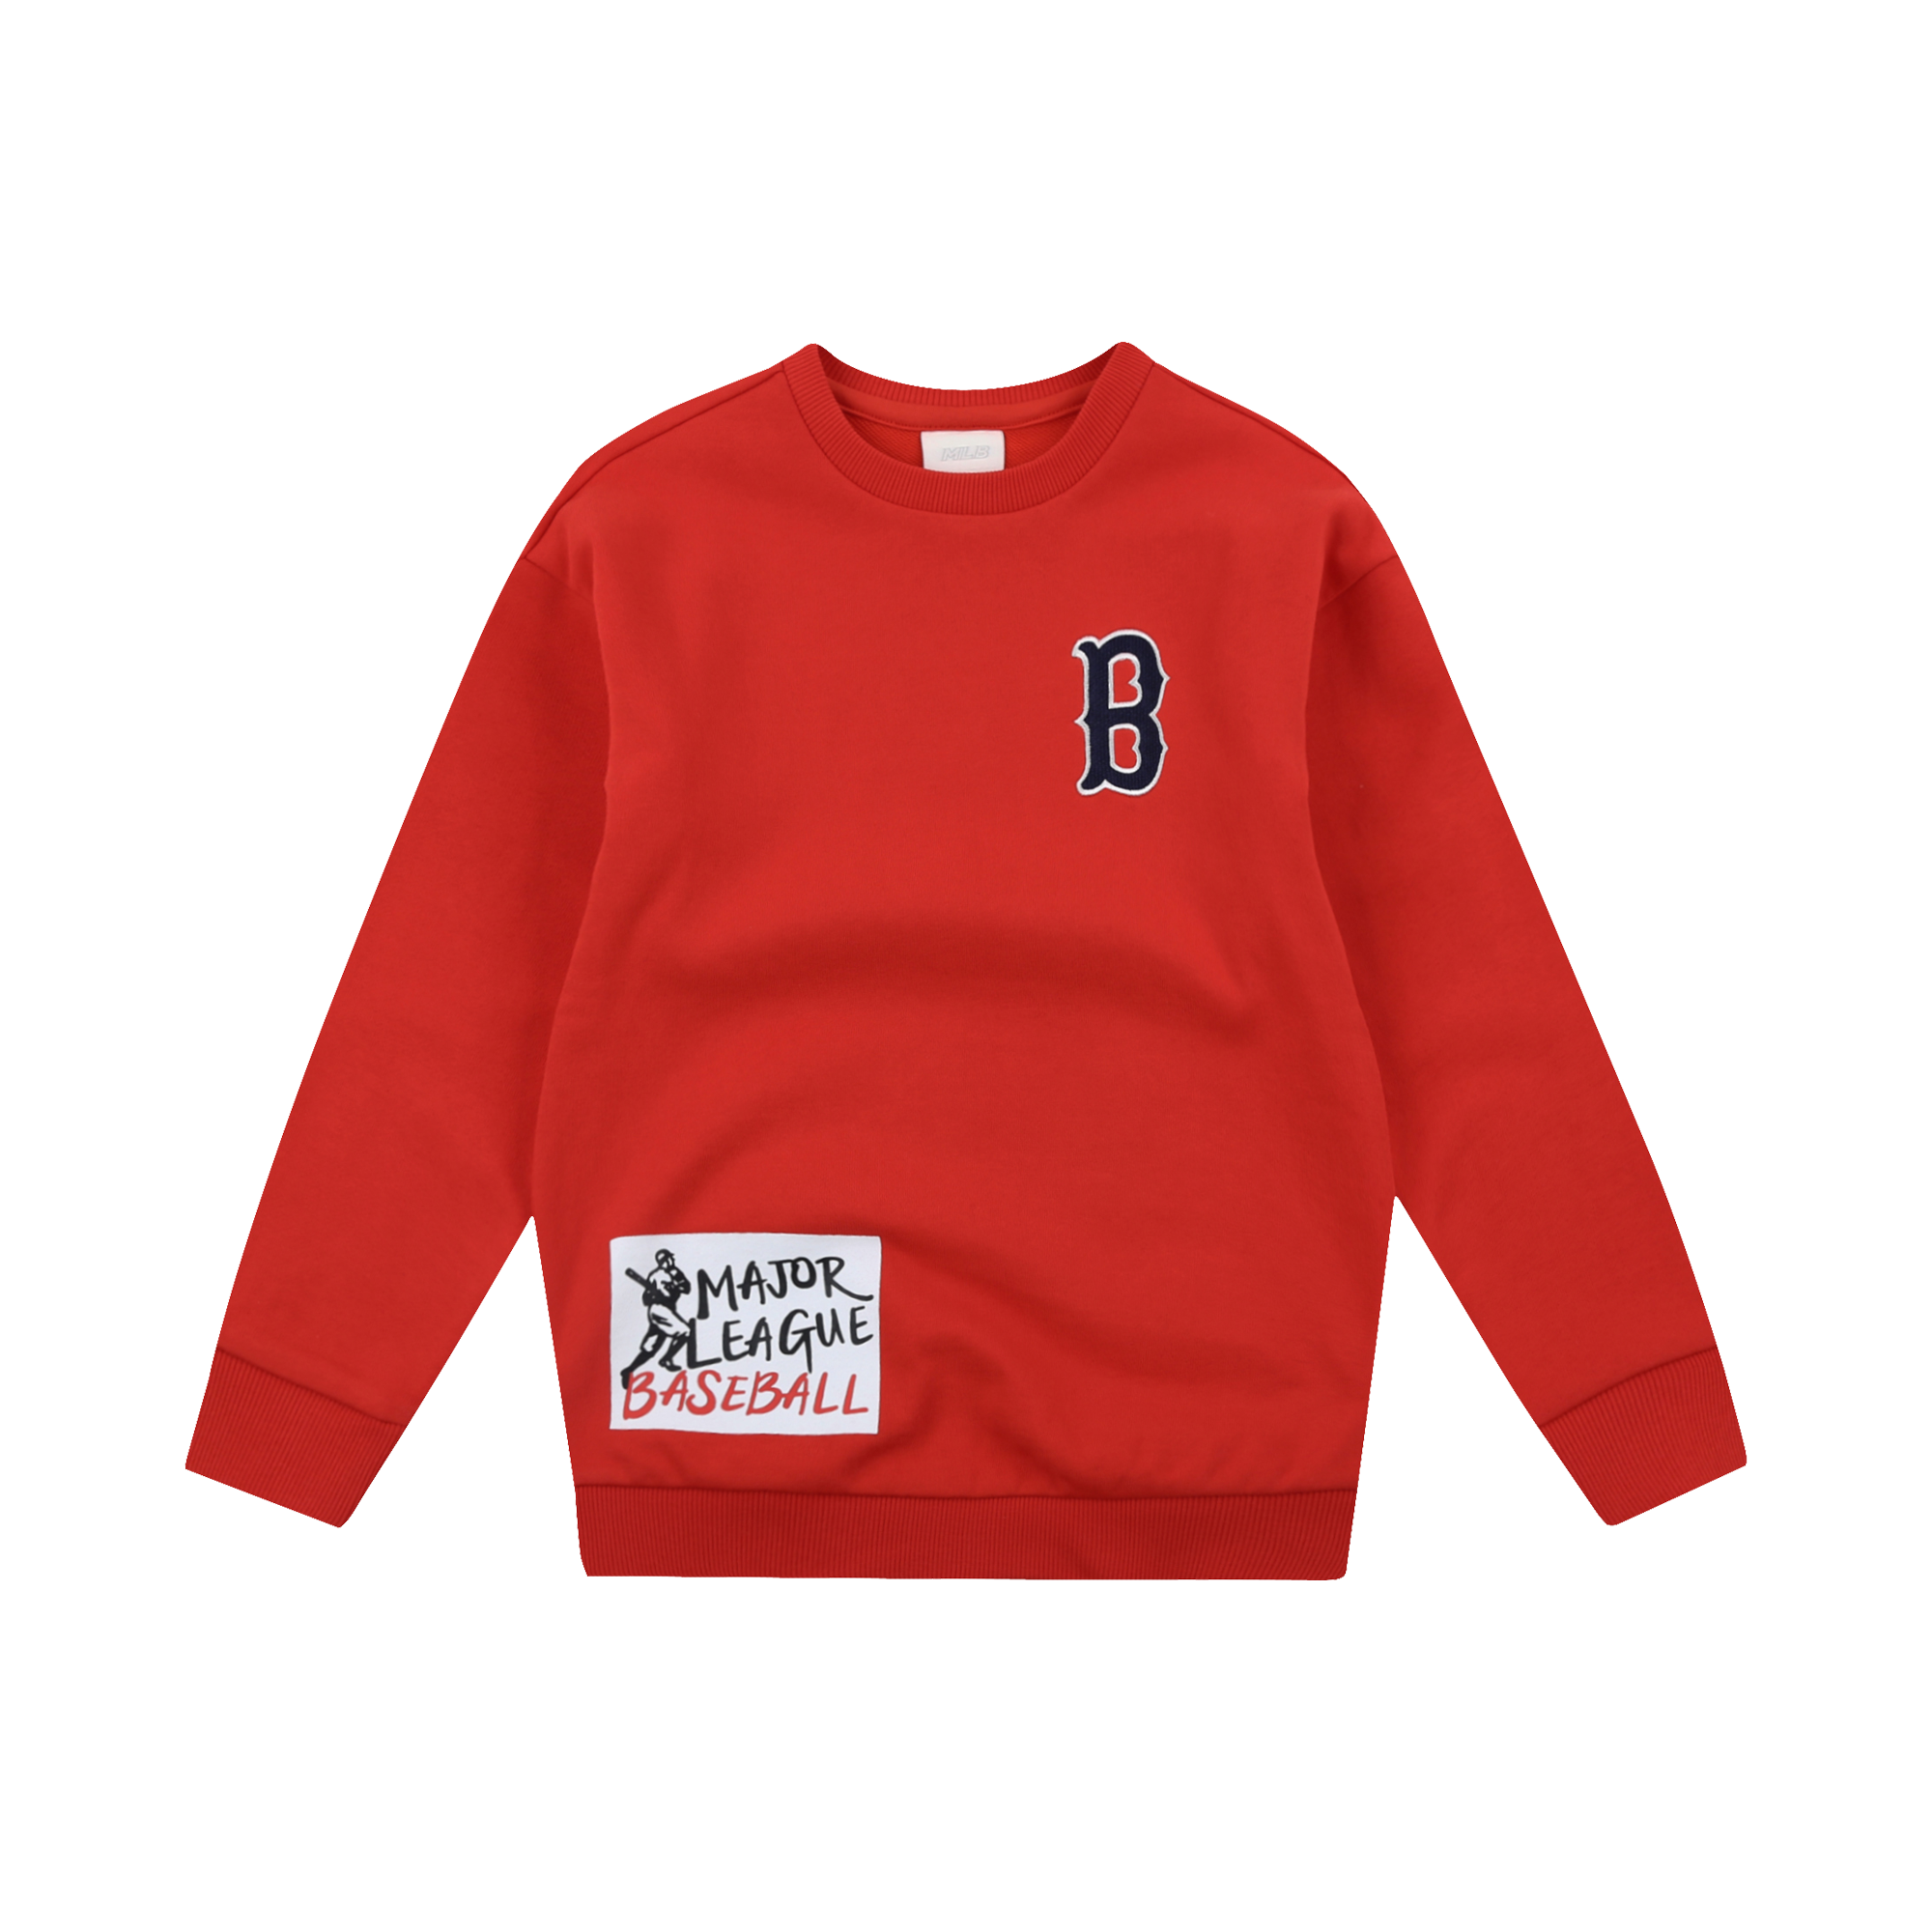 BOSTON RED SOX UNISEX COOPERS TOWN SWEATSHIRT